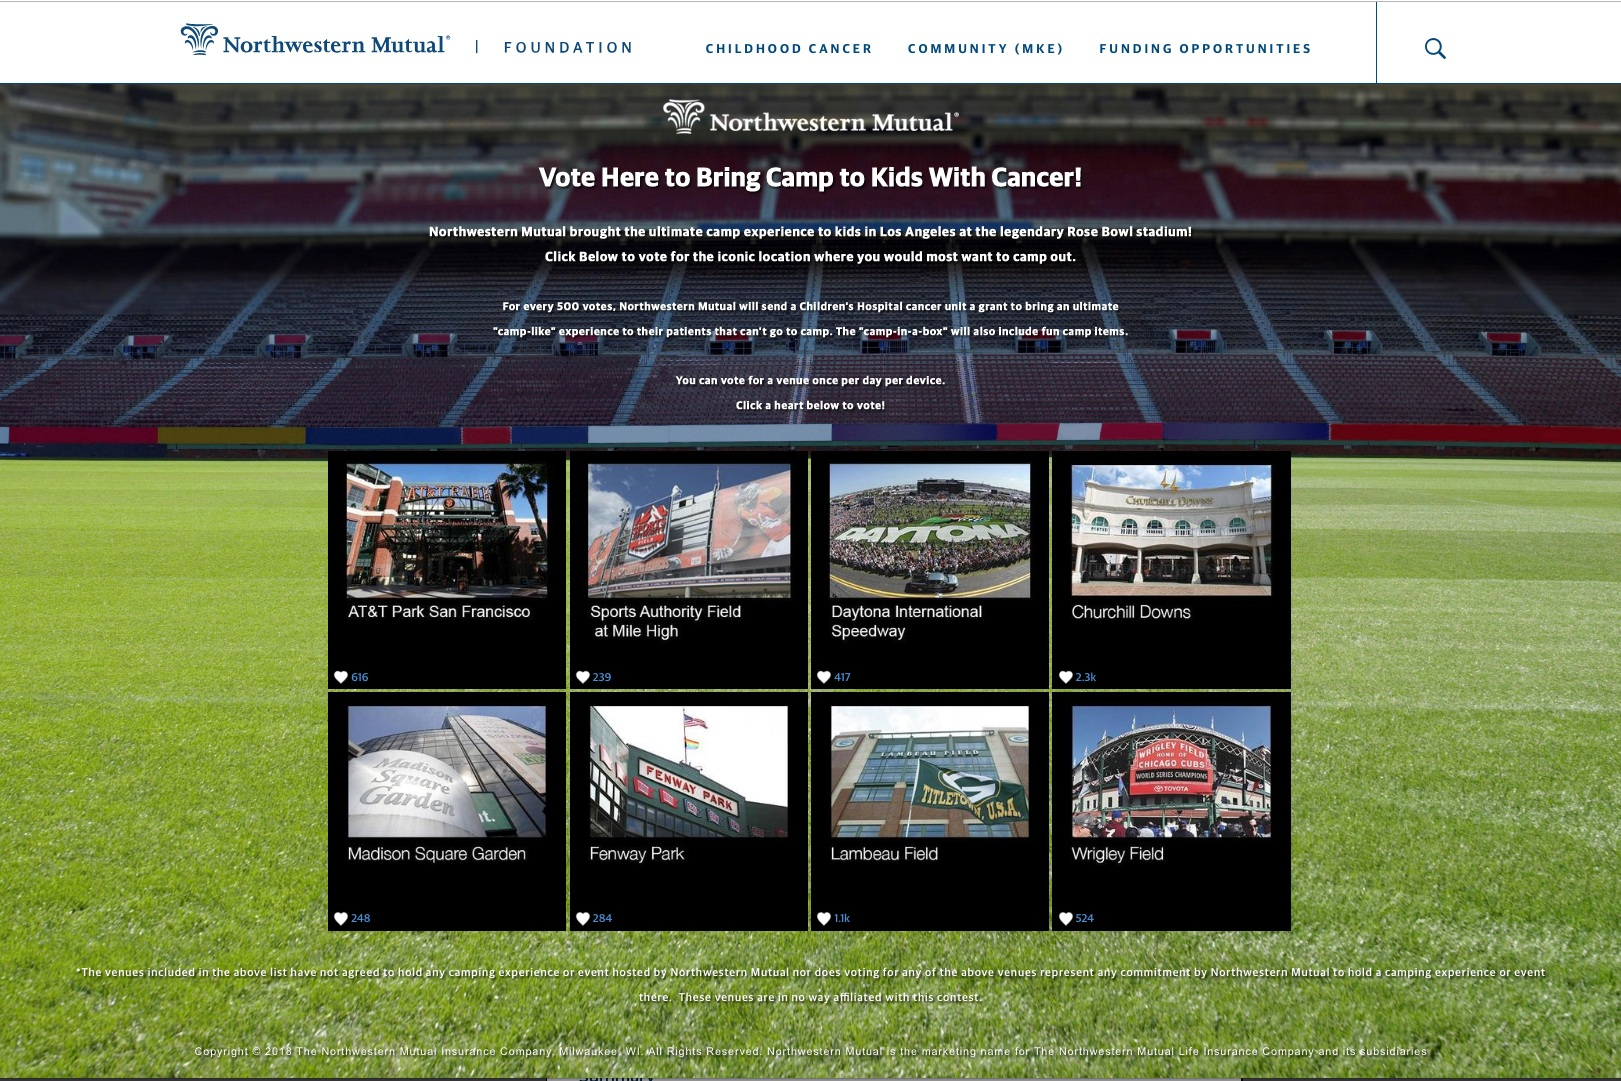 Voting page for the 2018 Northwestern Mutual Foundation Camp out